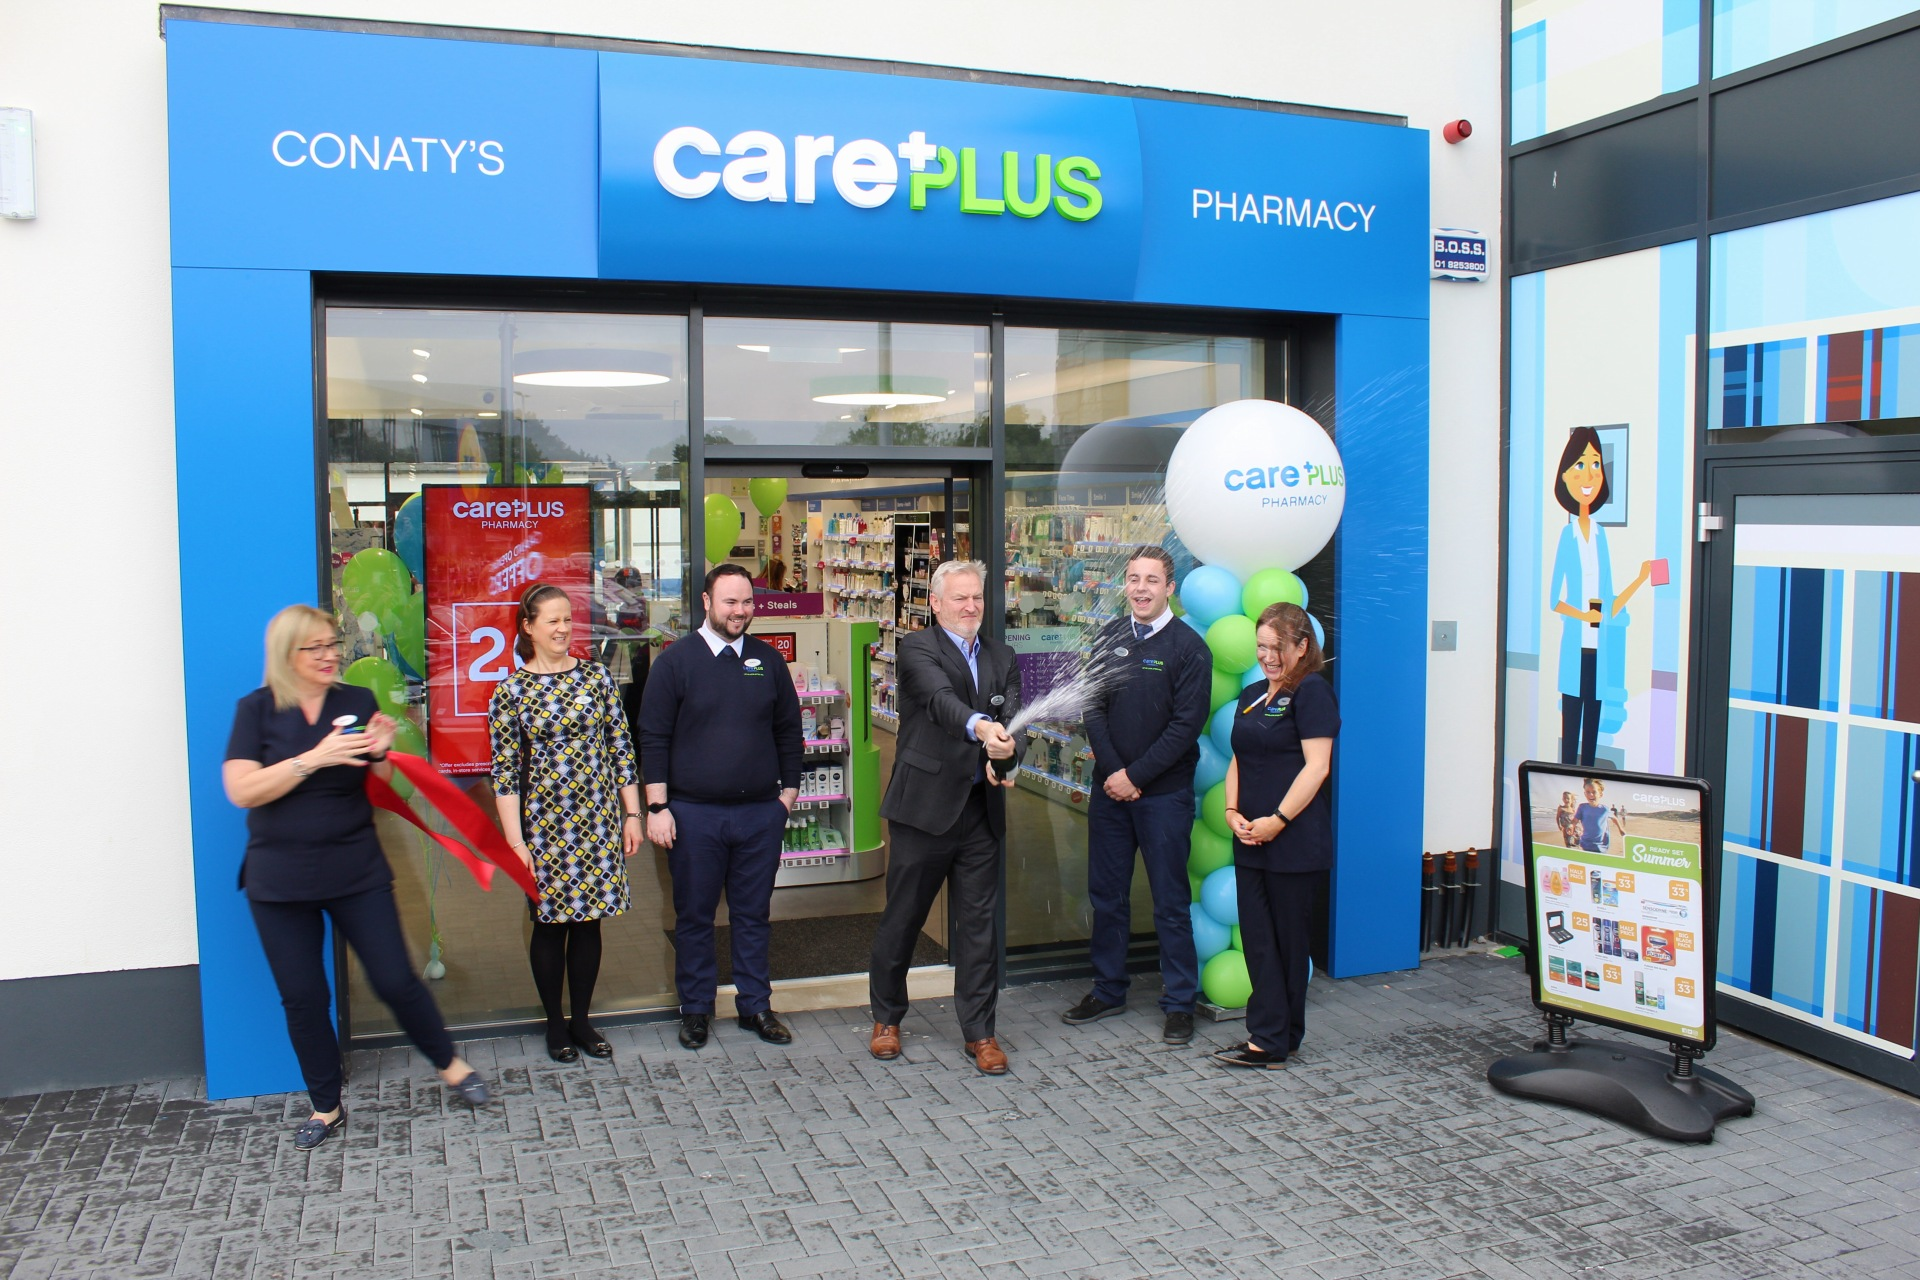 careplus pharmacy jobs, careplus pharmacy arklow, care plus pharmacy group head office, careplus pharmacy ballina, careplus pharmacy head office phone number,spooners careplus pharmacy, careplus carrigaline pharmacy kilcock, dunshaughlin houses for sale, dunshaughlin secondary school, dunshaughlin population, dunshaughlin castle	dunshaughlin map, dunshaughlin directions, dunshaughlin pubs, dunshaughlin food